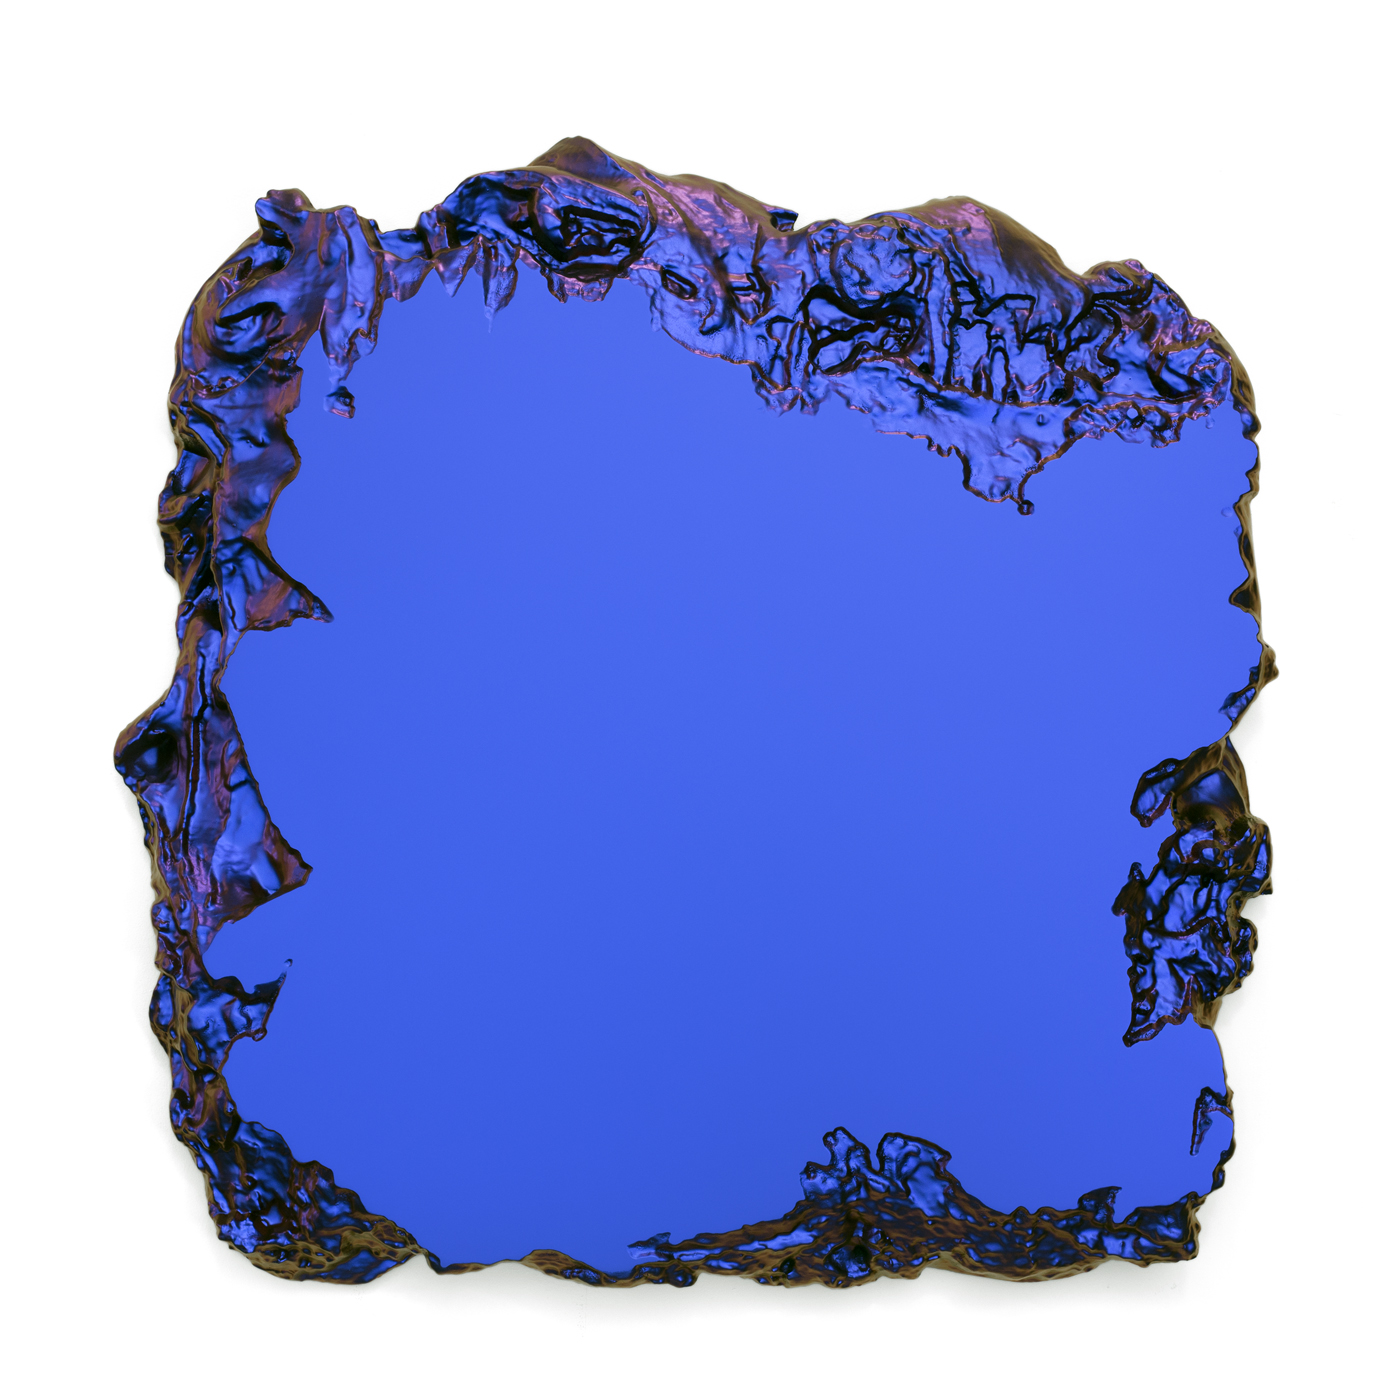 Blue to Red 100x100cm Interference pigment, polyurethan